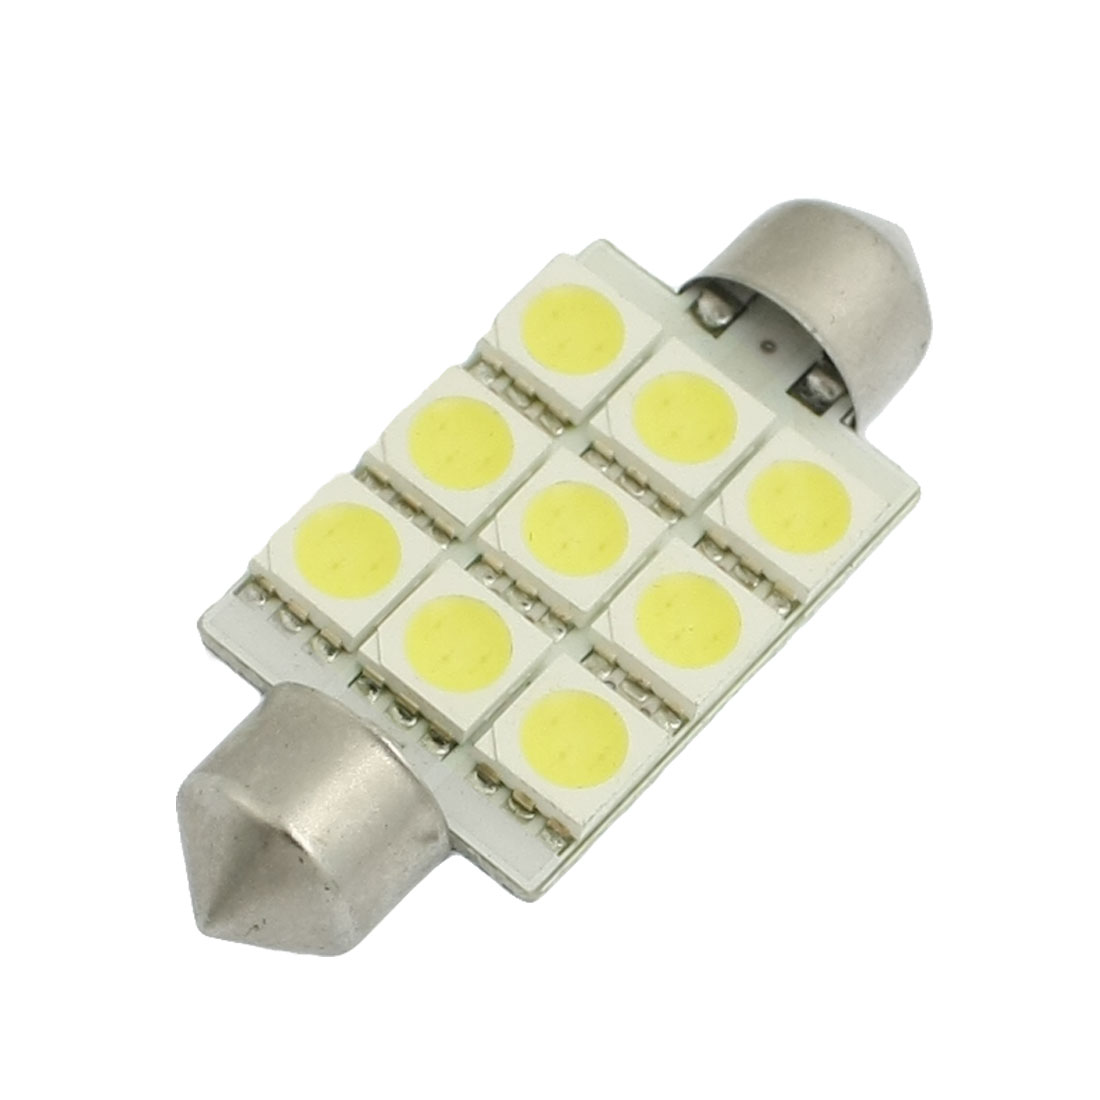 Car White 9 SMD 5050 LED Festoon Interior Dome Light Lamp Bulb 41mm